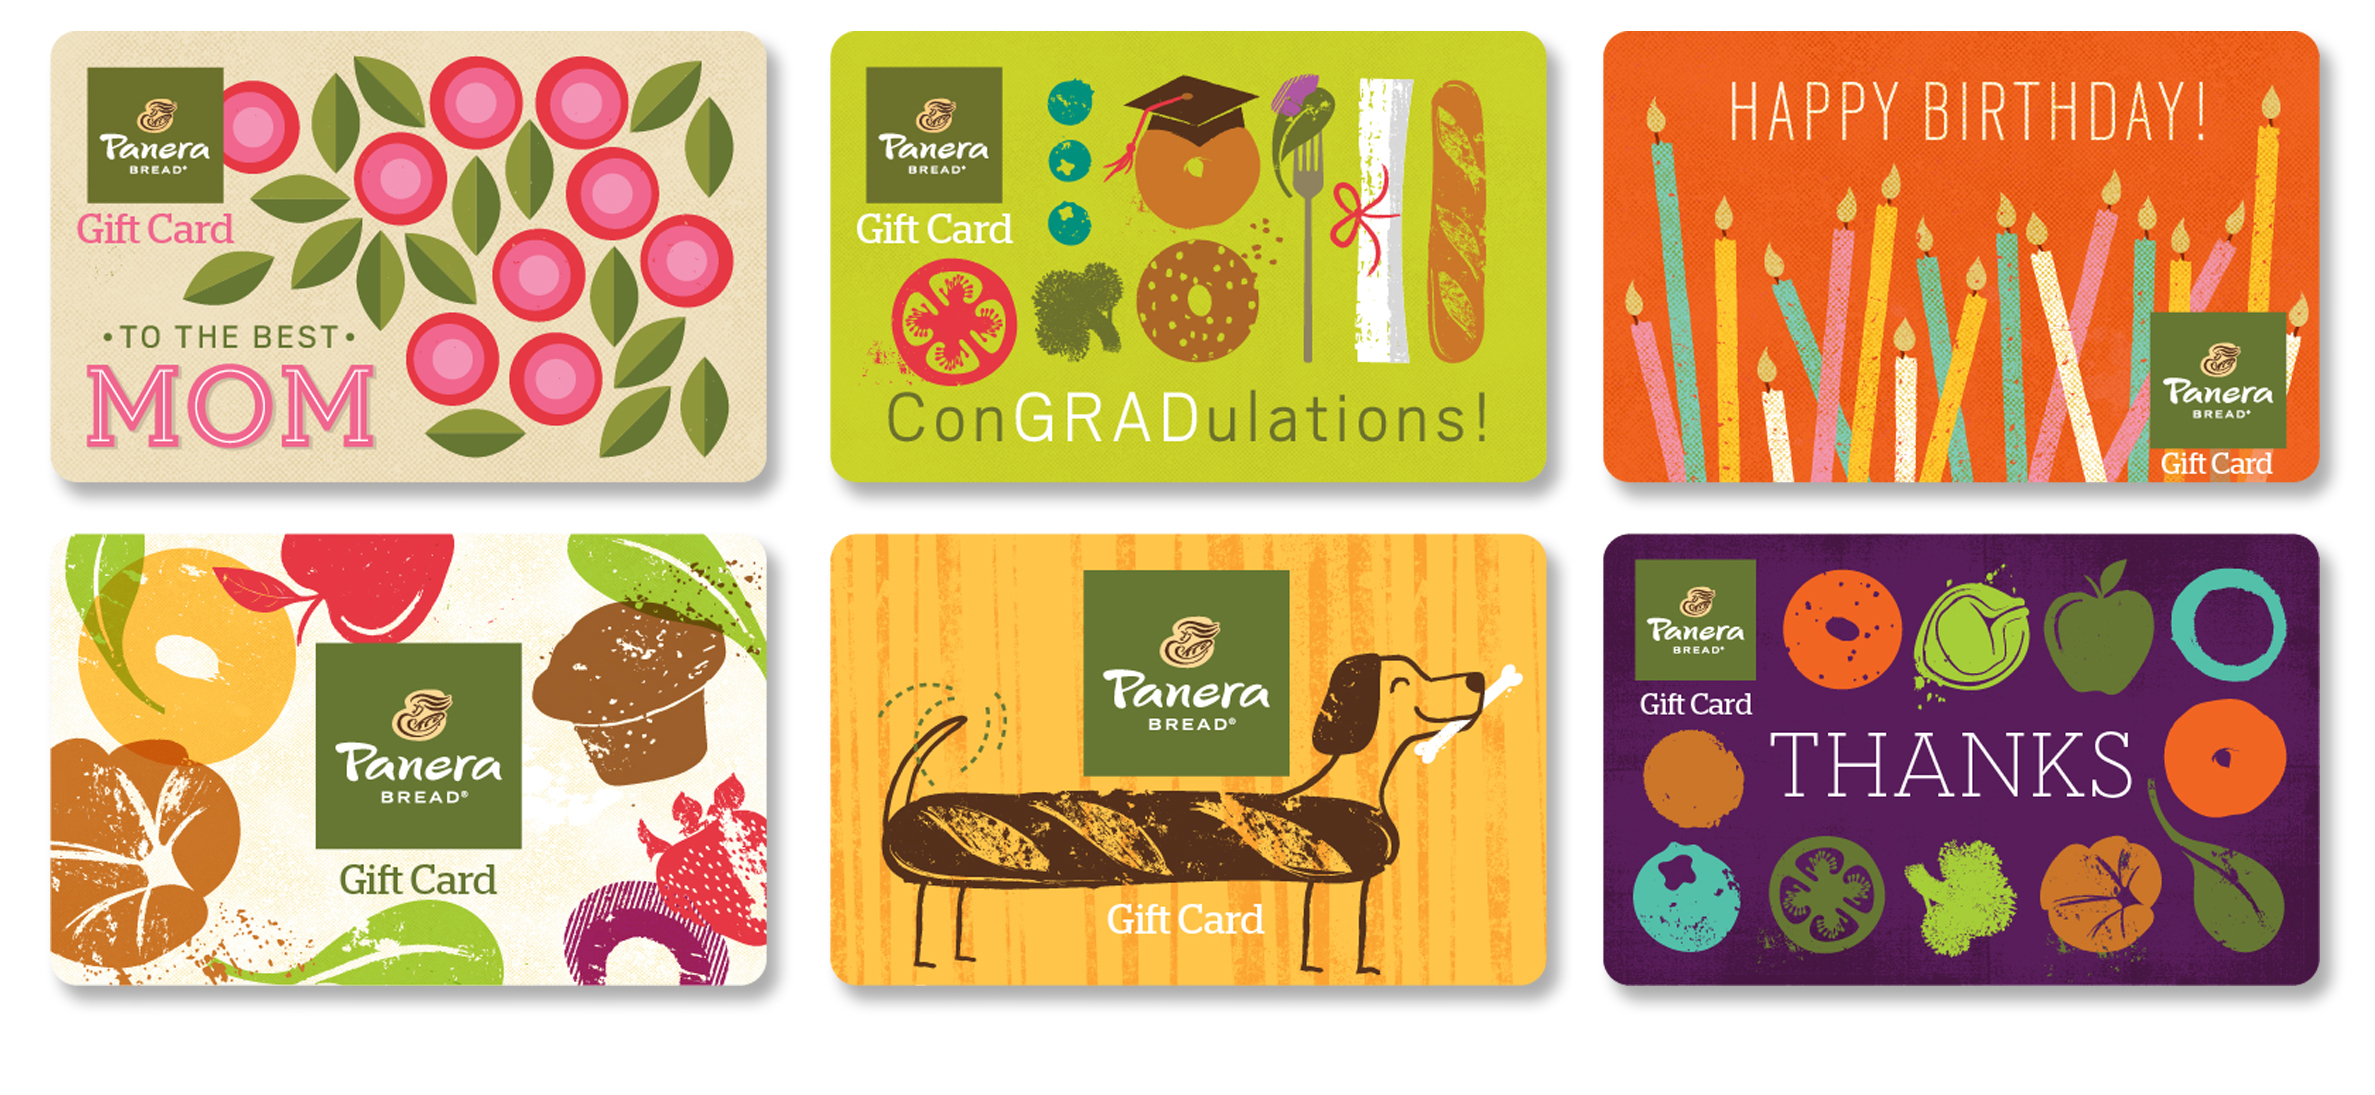 Panera Bread - Final Gift Cards